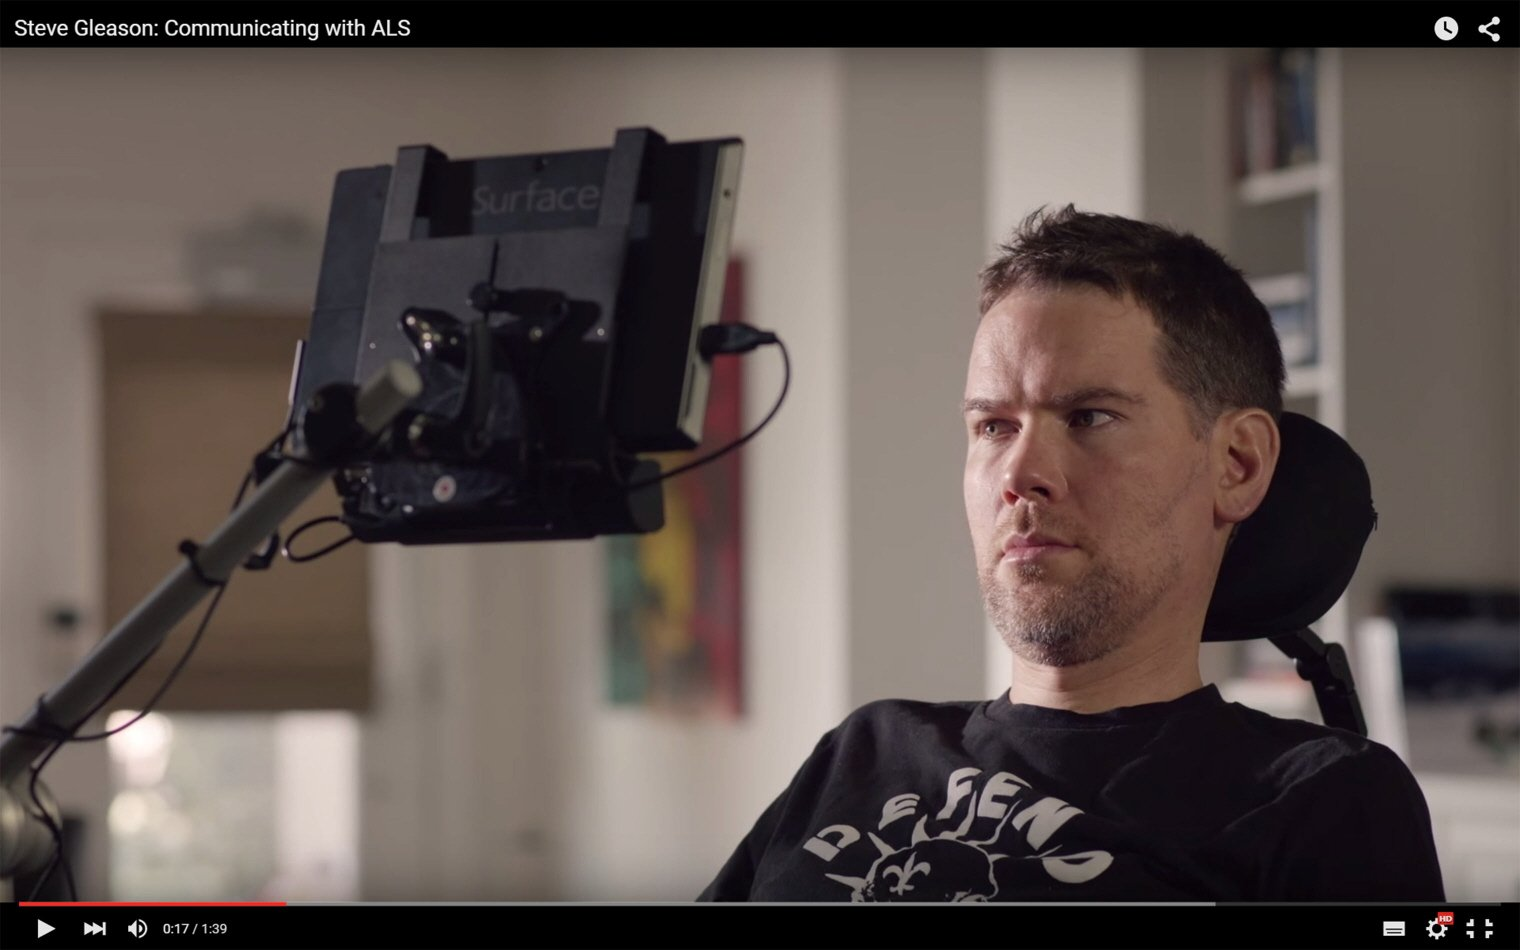 Steve Gleason - communicating with ALS